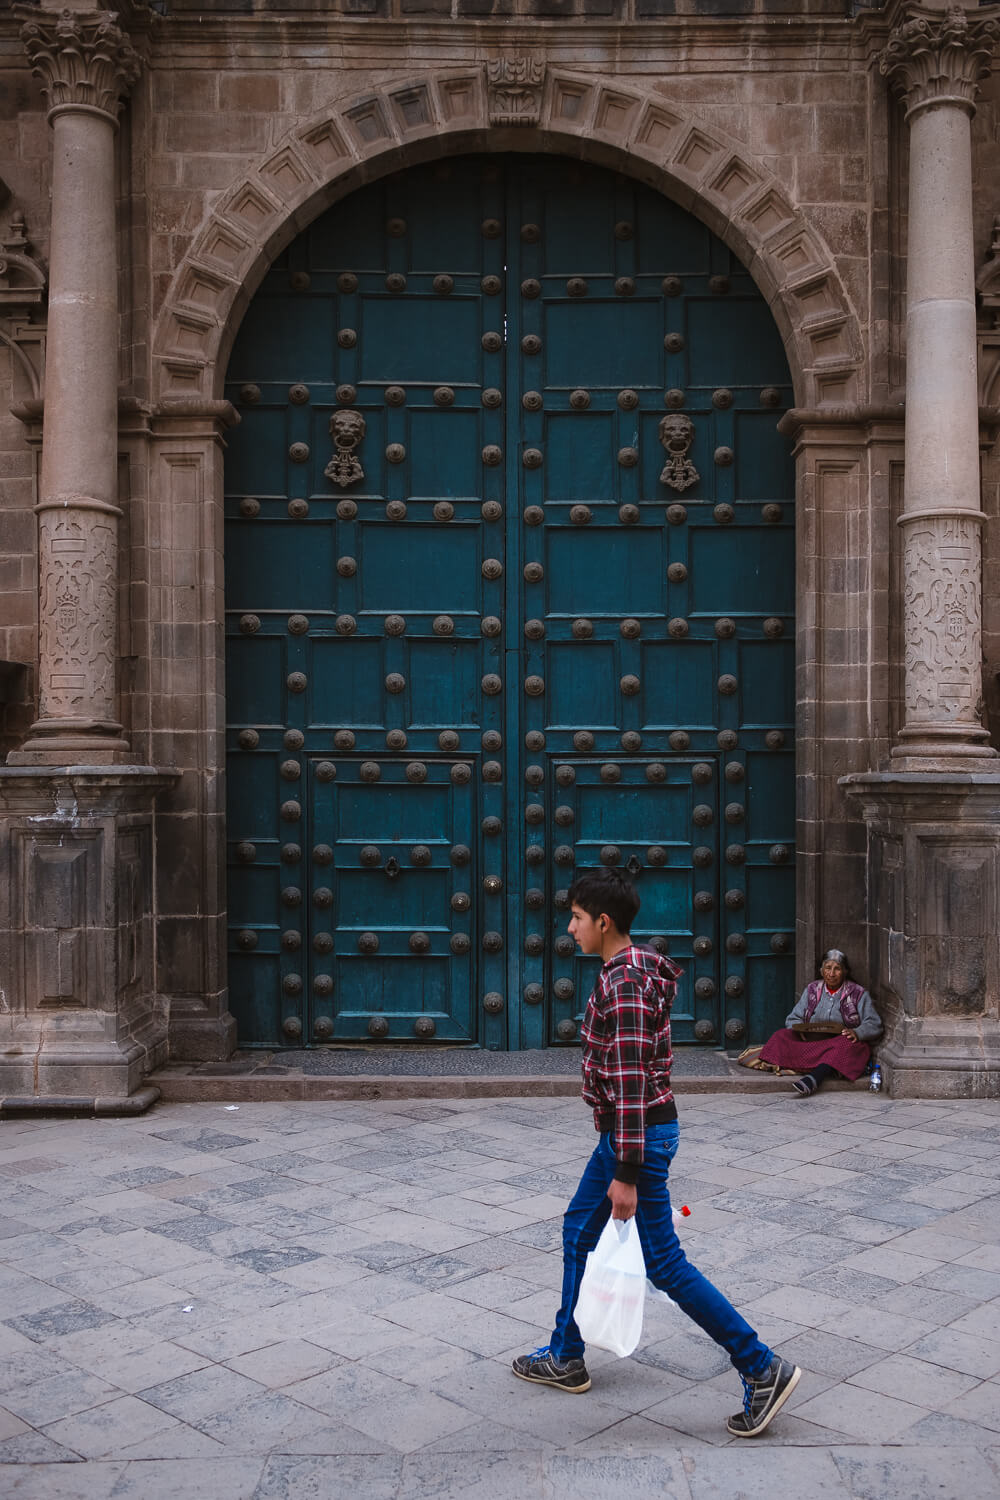 """Boy walking by the Cusco Cathedral, Cusco. Travel photography and guide by © Natasha Lequepeys for """"And Then I Met Yoko"""". #cusco #peru #photoblog #travelblog #peruitinerary #cuscoitinerary"""